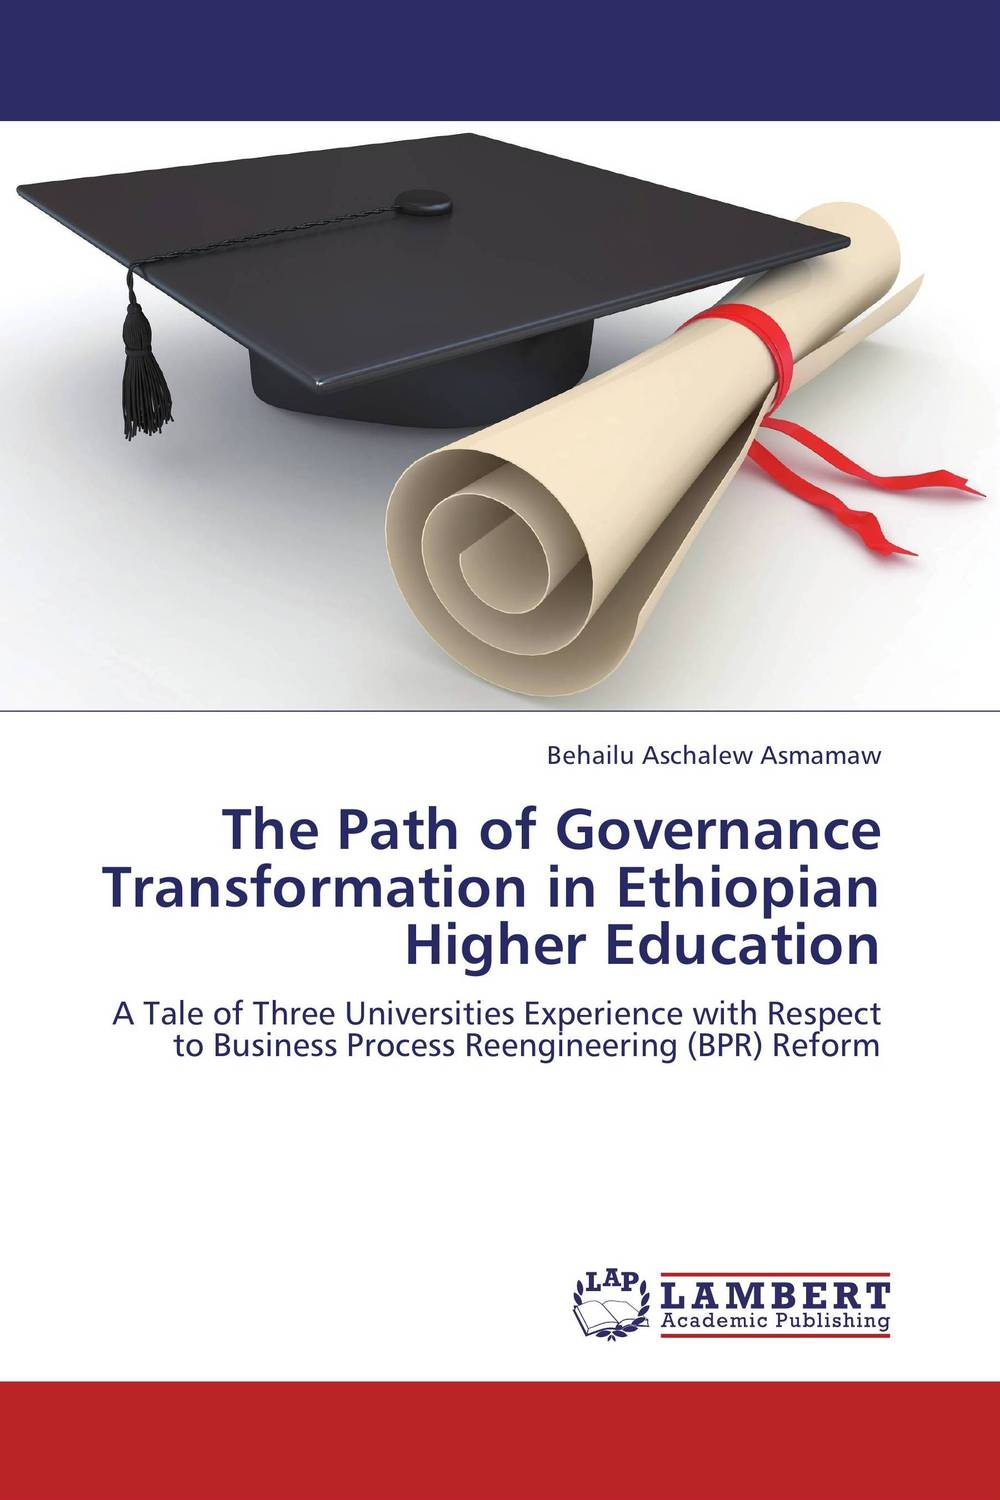 The Path of Governance Transformation in Ethiopian Higher Education пластмастер самолет ястреб